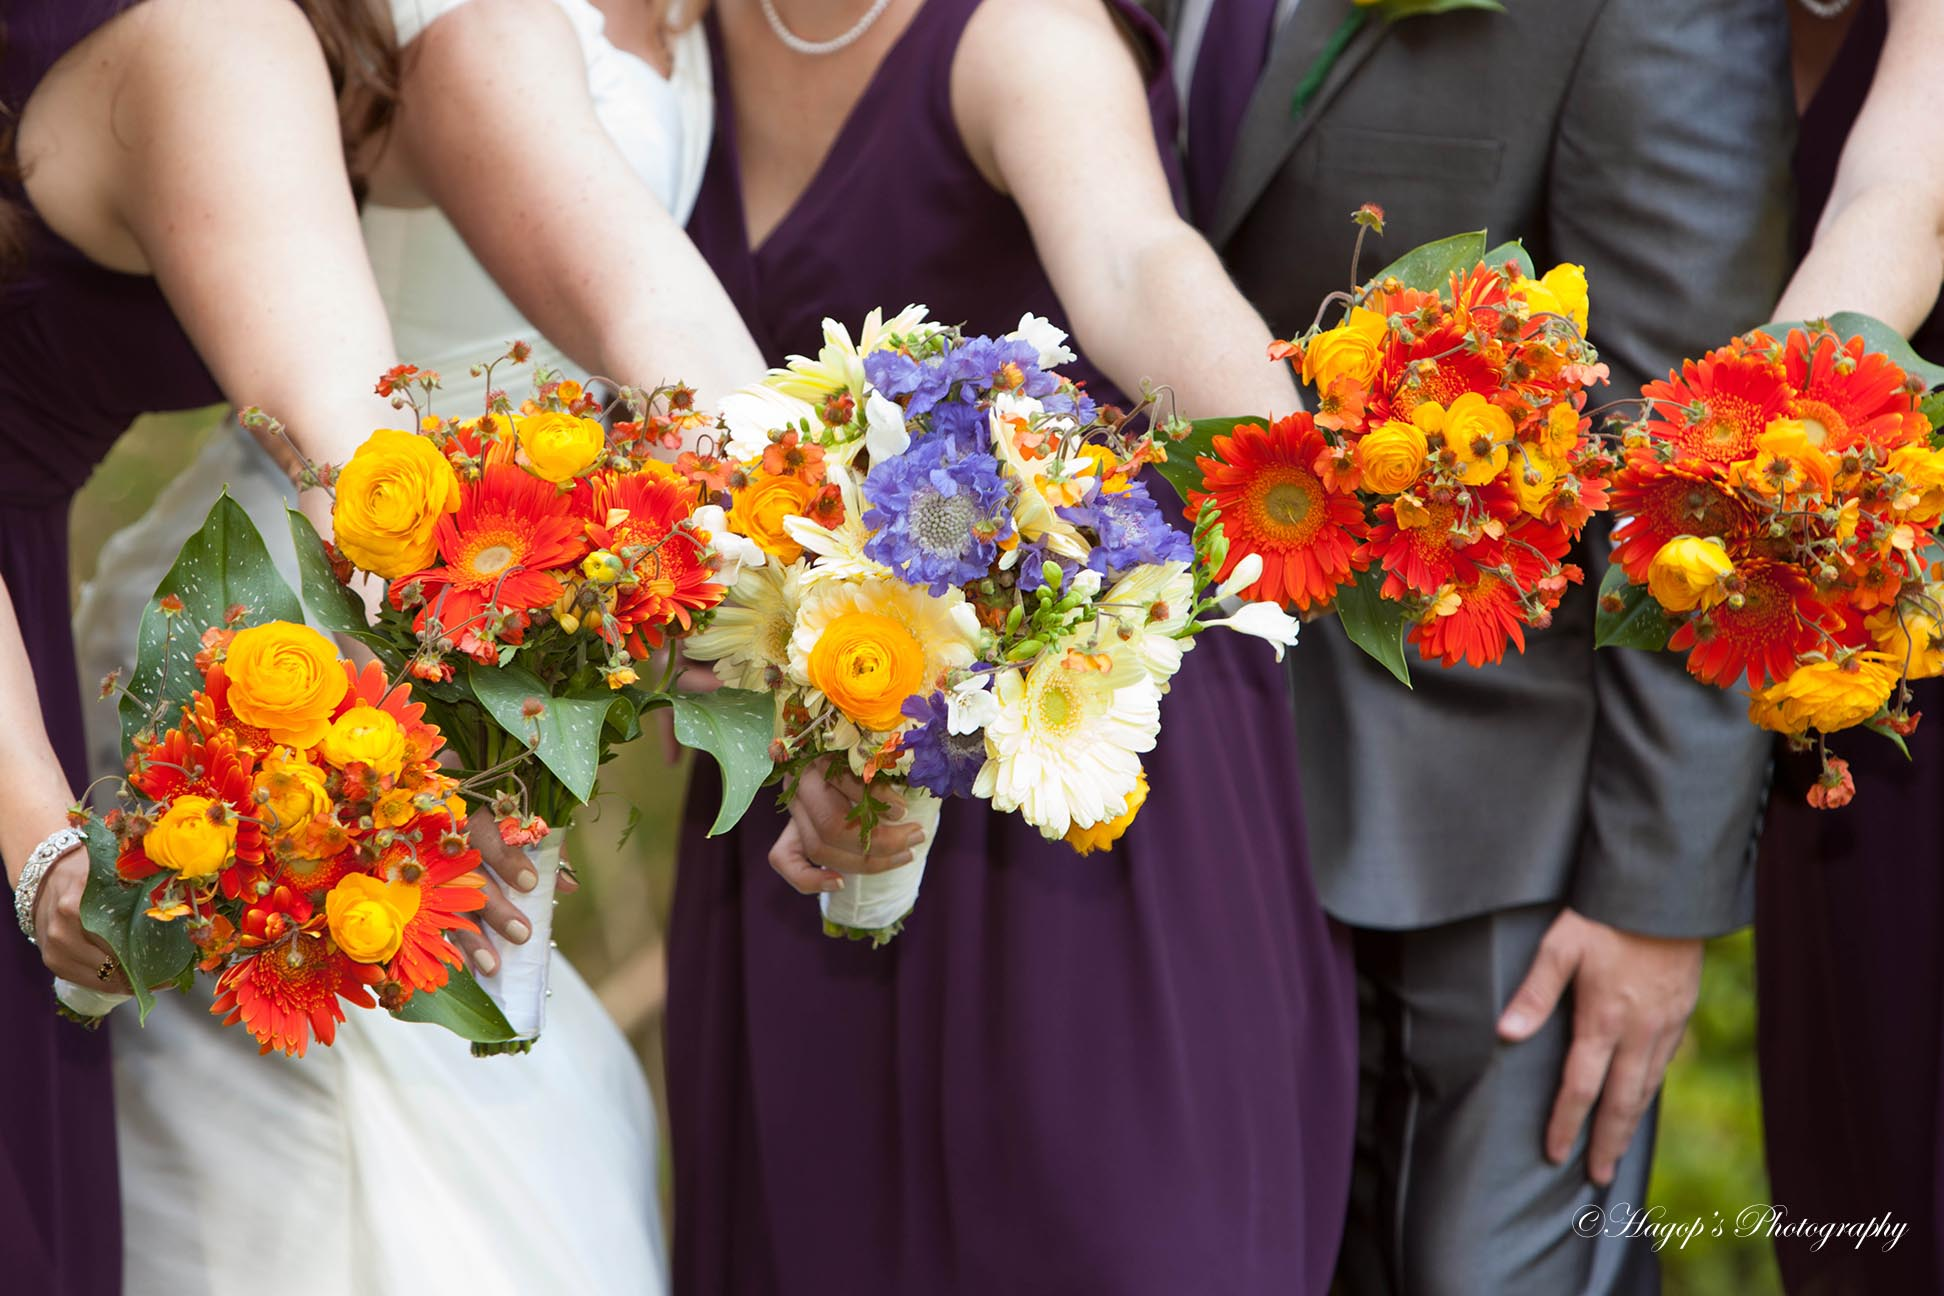 bridesmaids point their bouquets to the camera